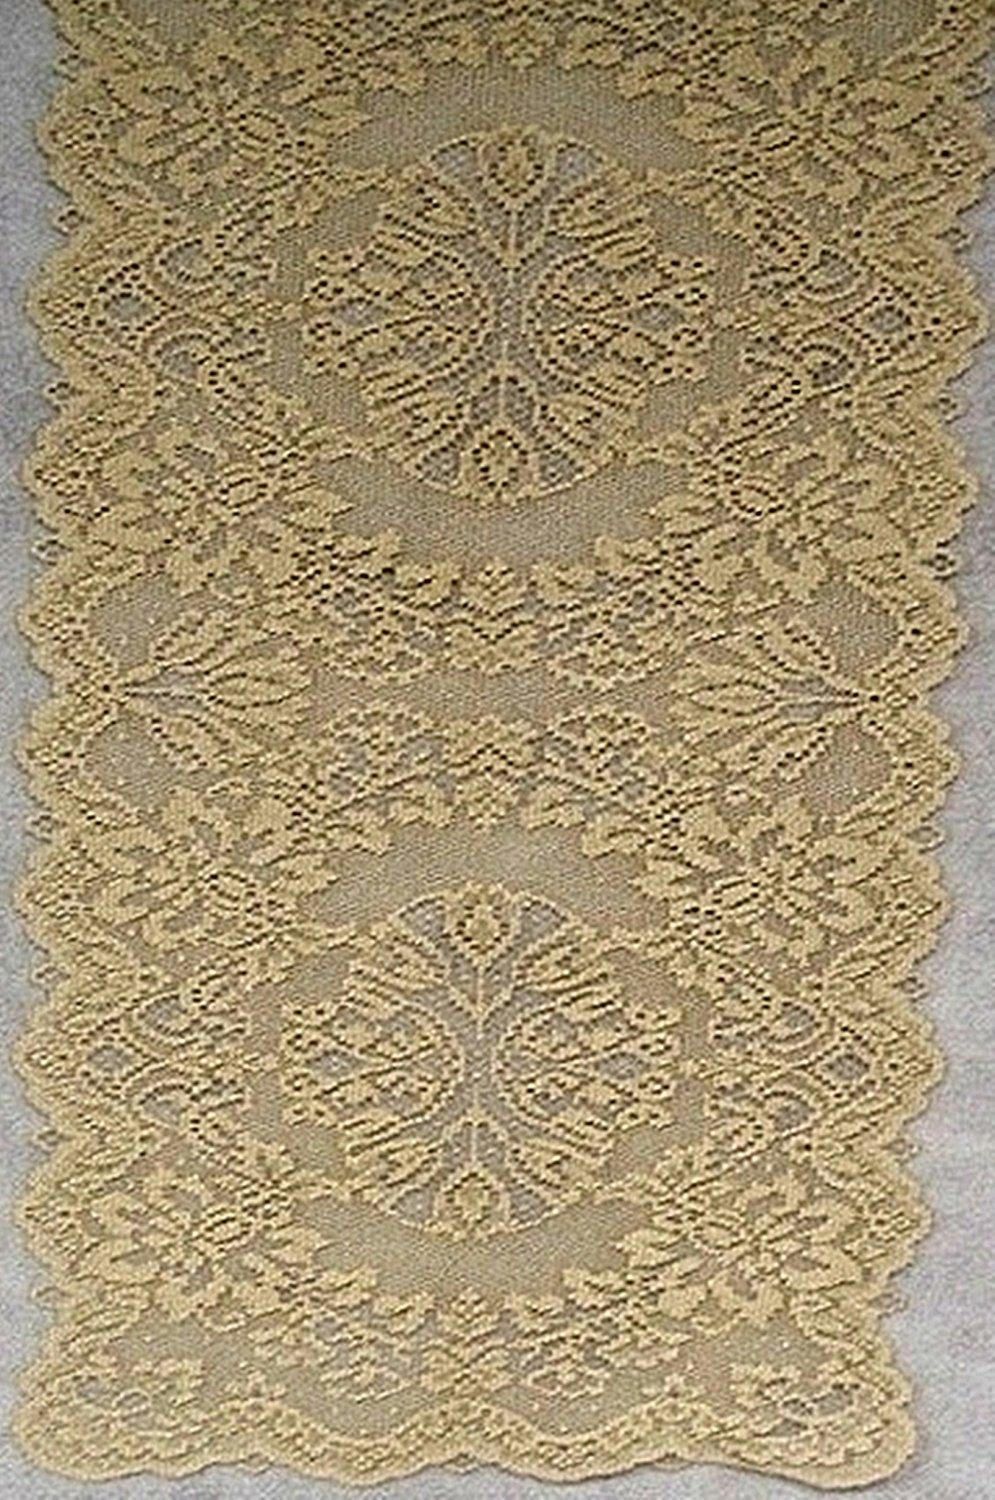 Table Runners Savoy 14x36 Metallic Antique Gold Heritage Lace